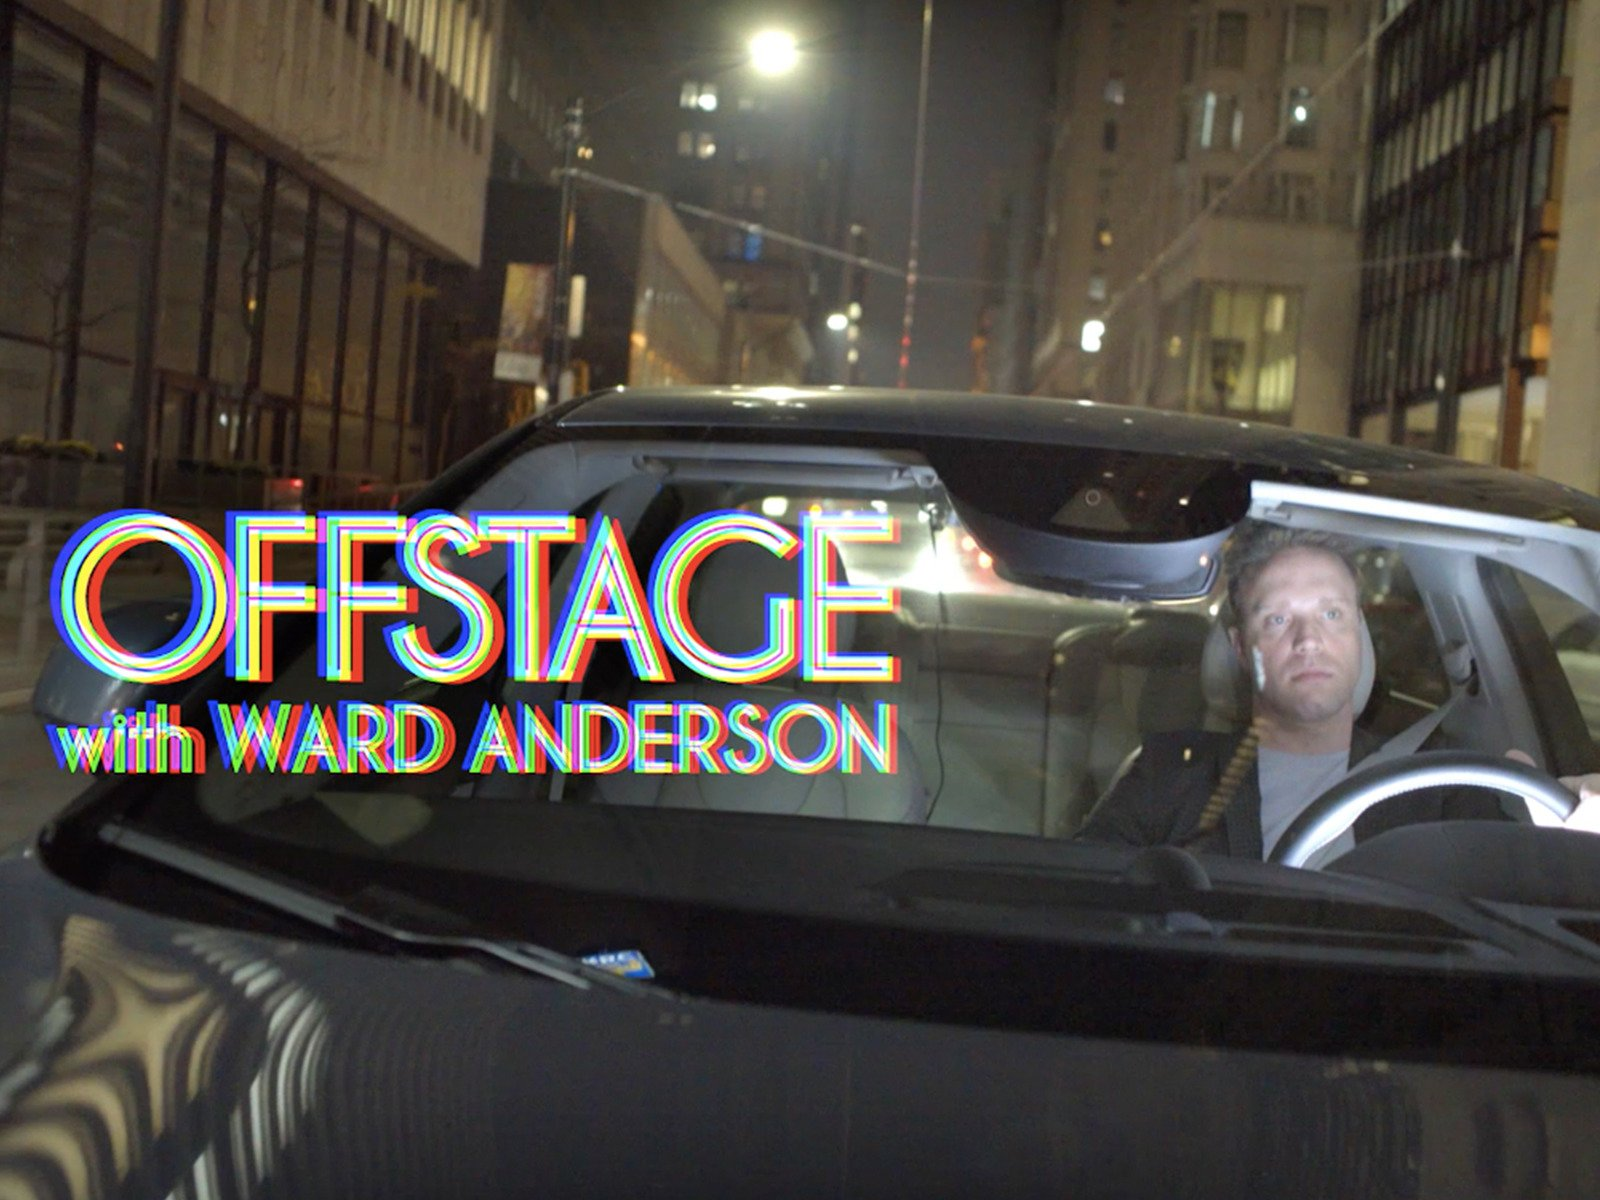 Offstage with Ward Anderson - Season 2